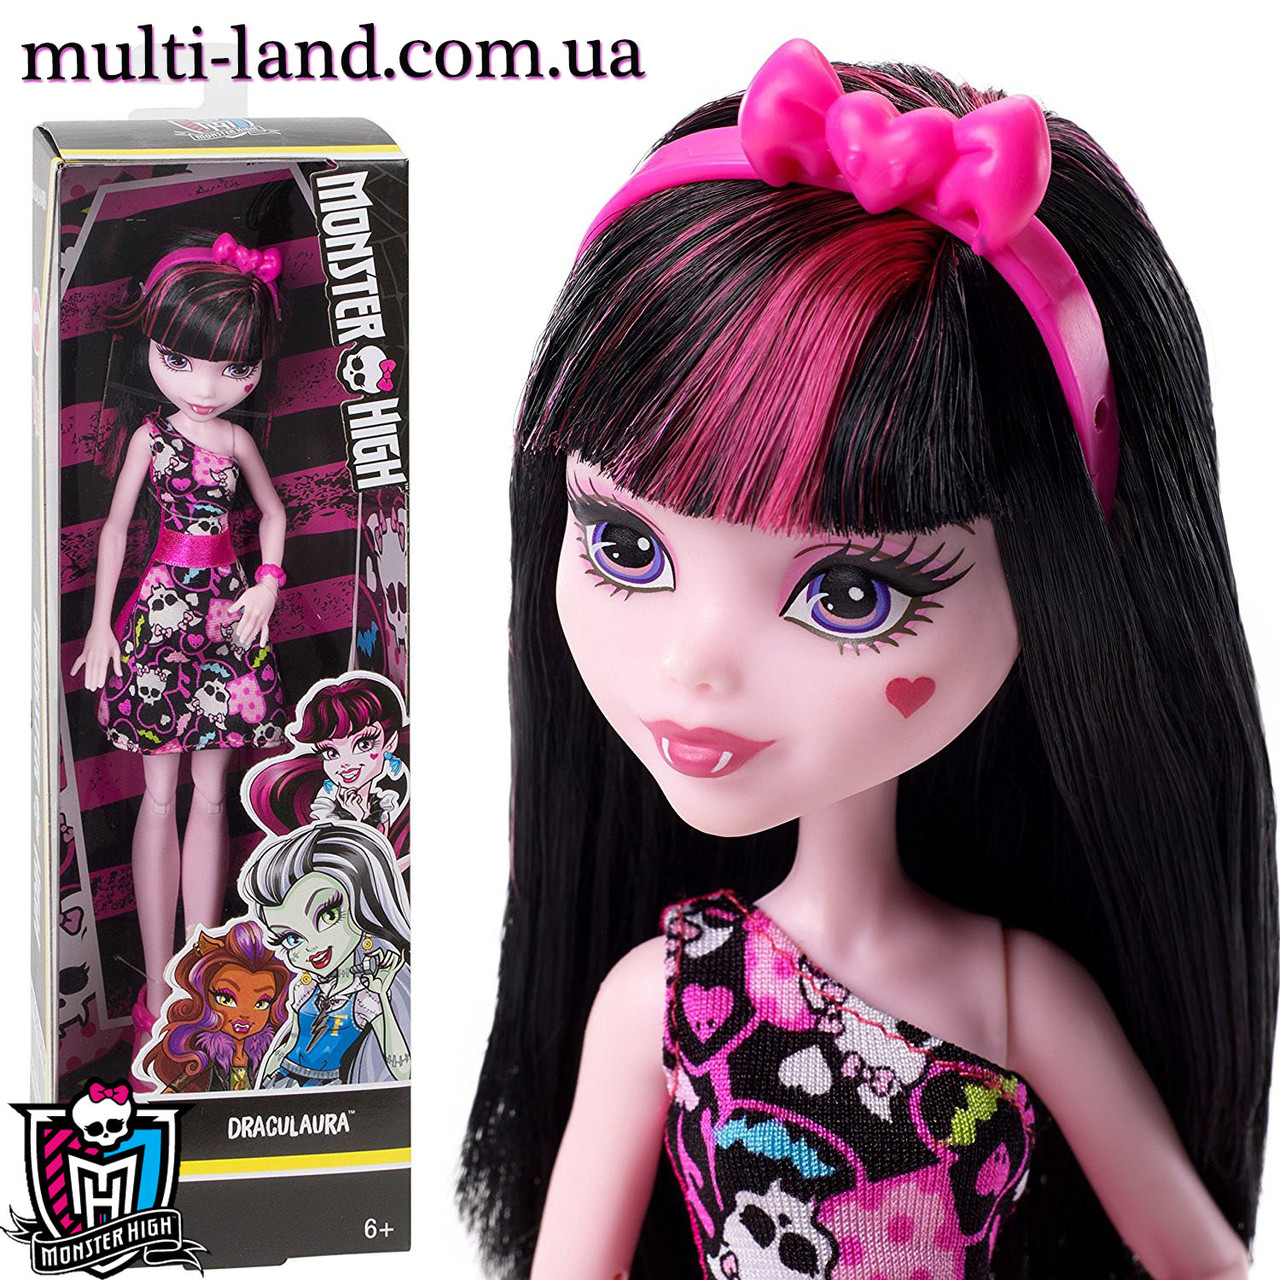 Кукла Монстер Хай Дракулаура Monster High Draculaura Doll